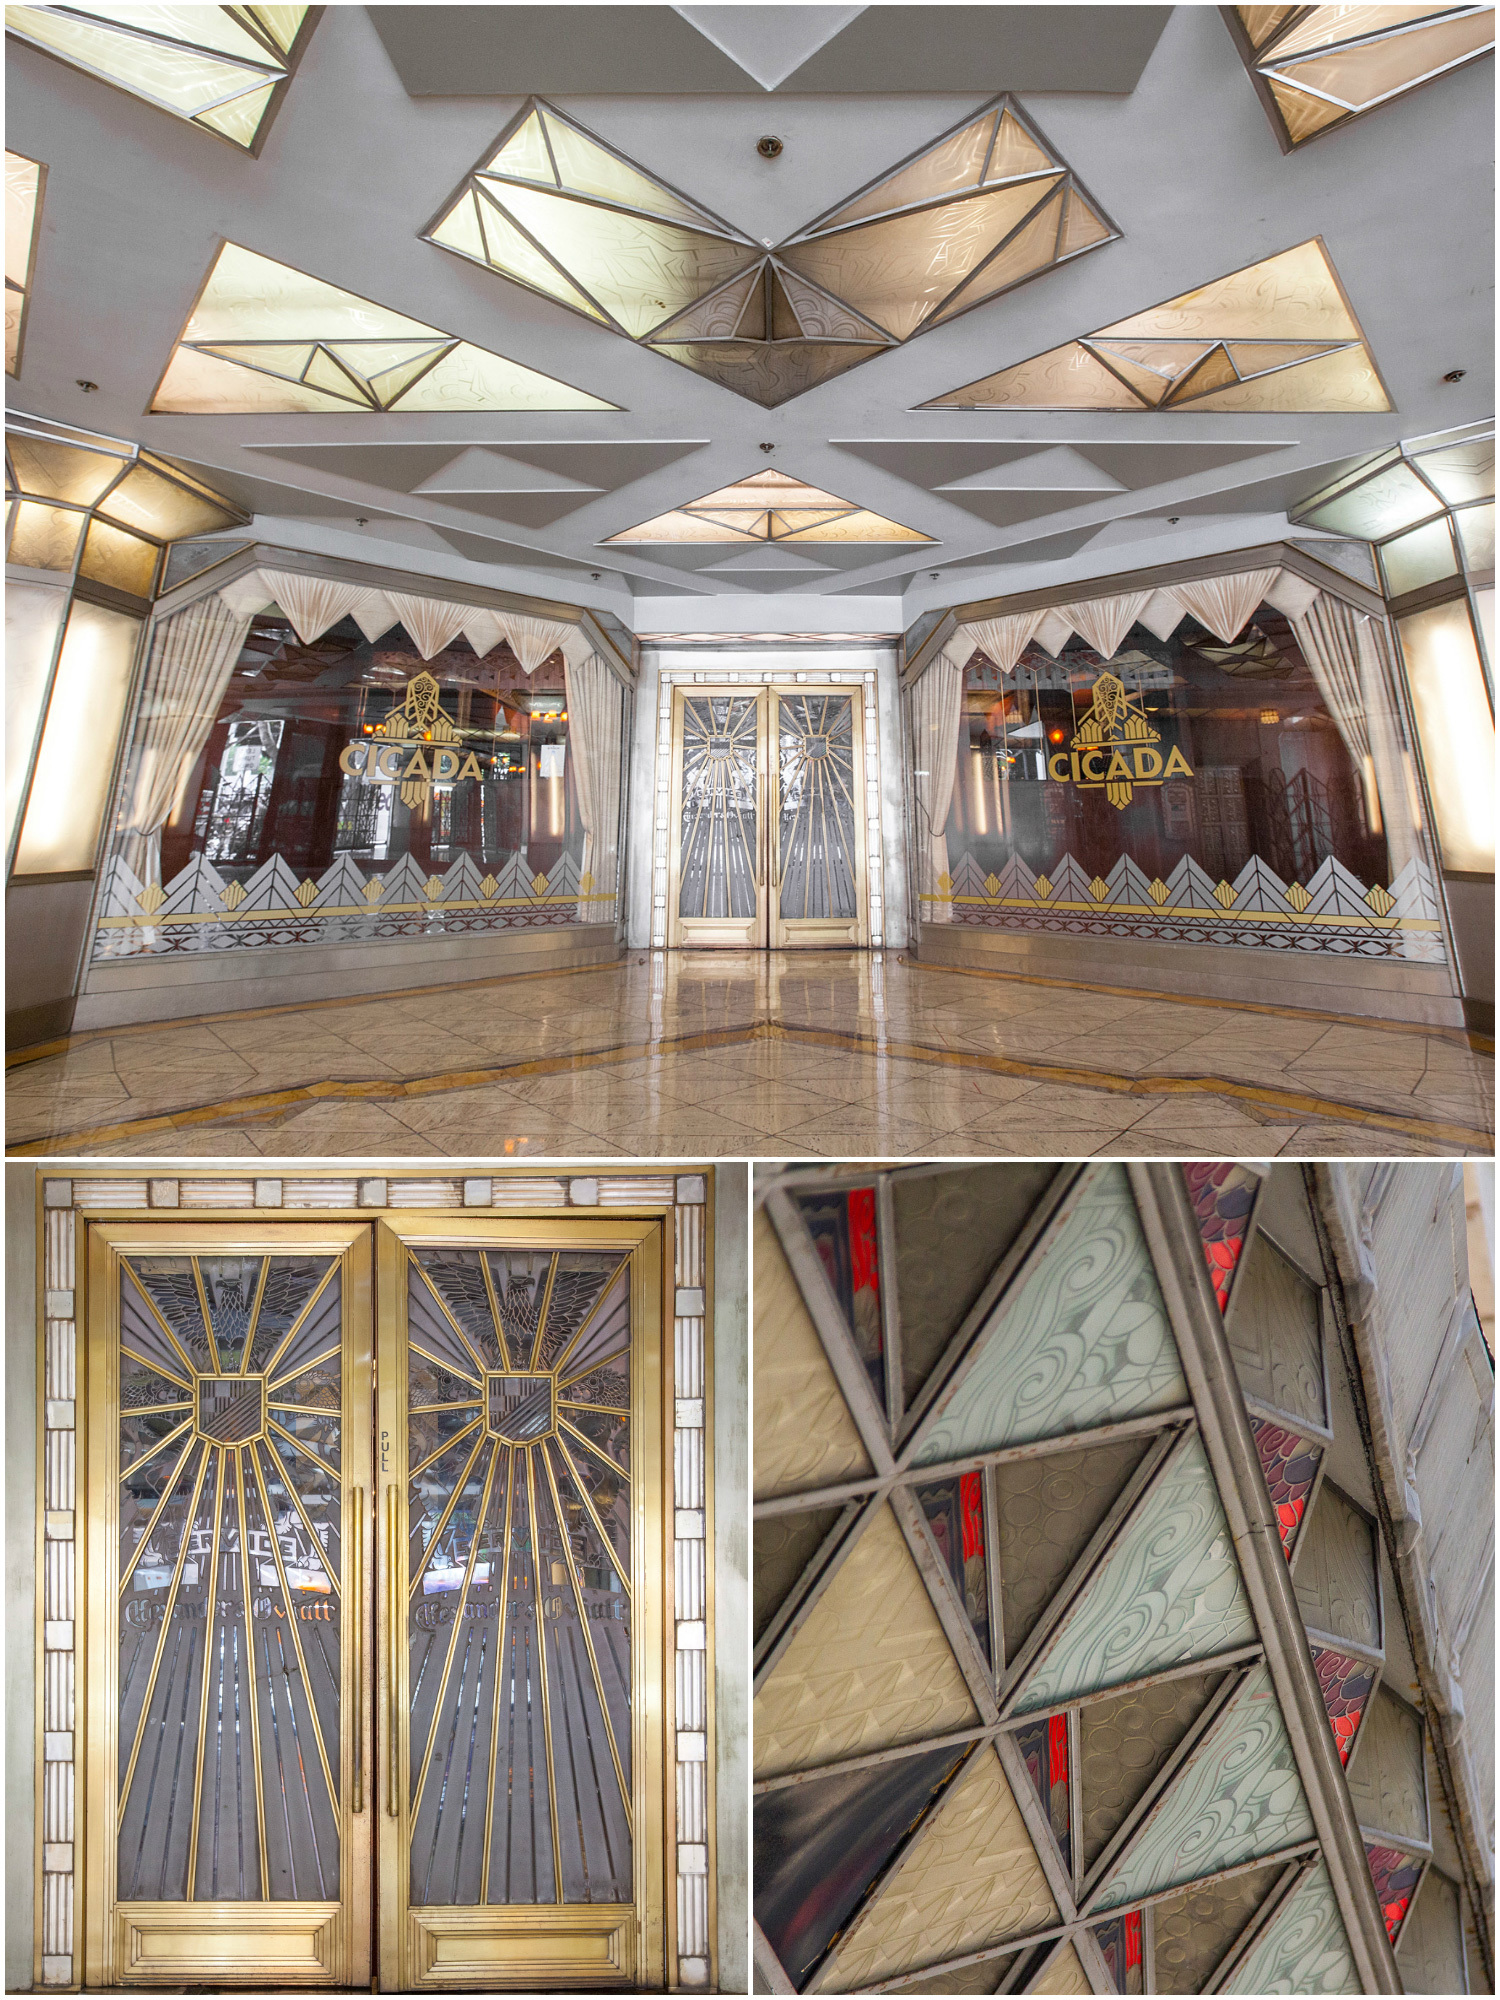 Art deco buildings in los angeles and where to find them for Art deco building materials